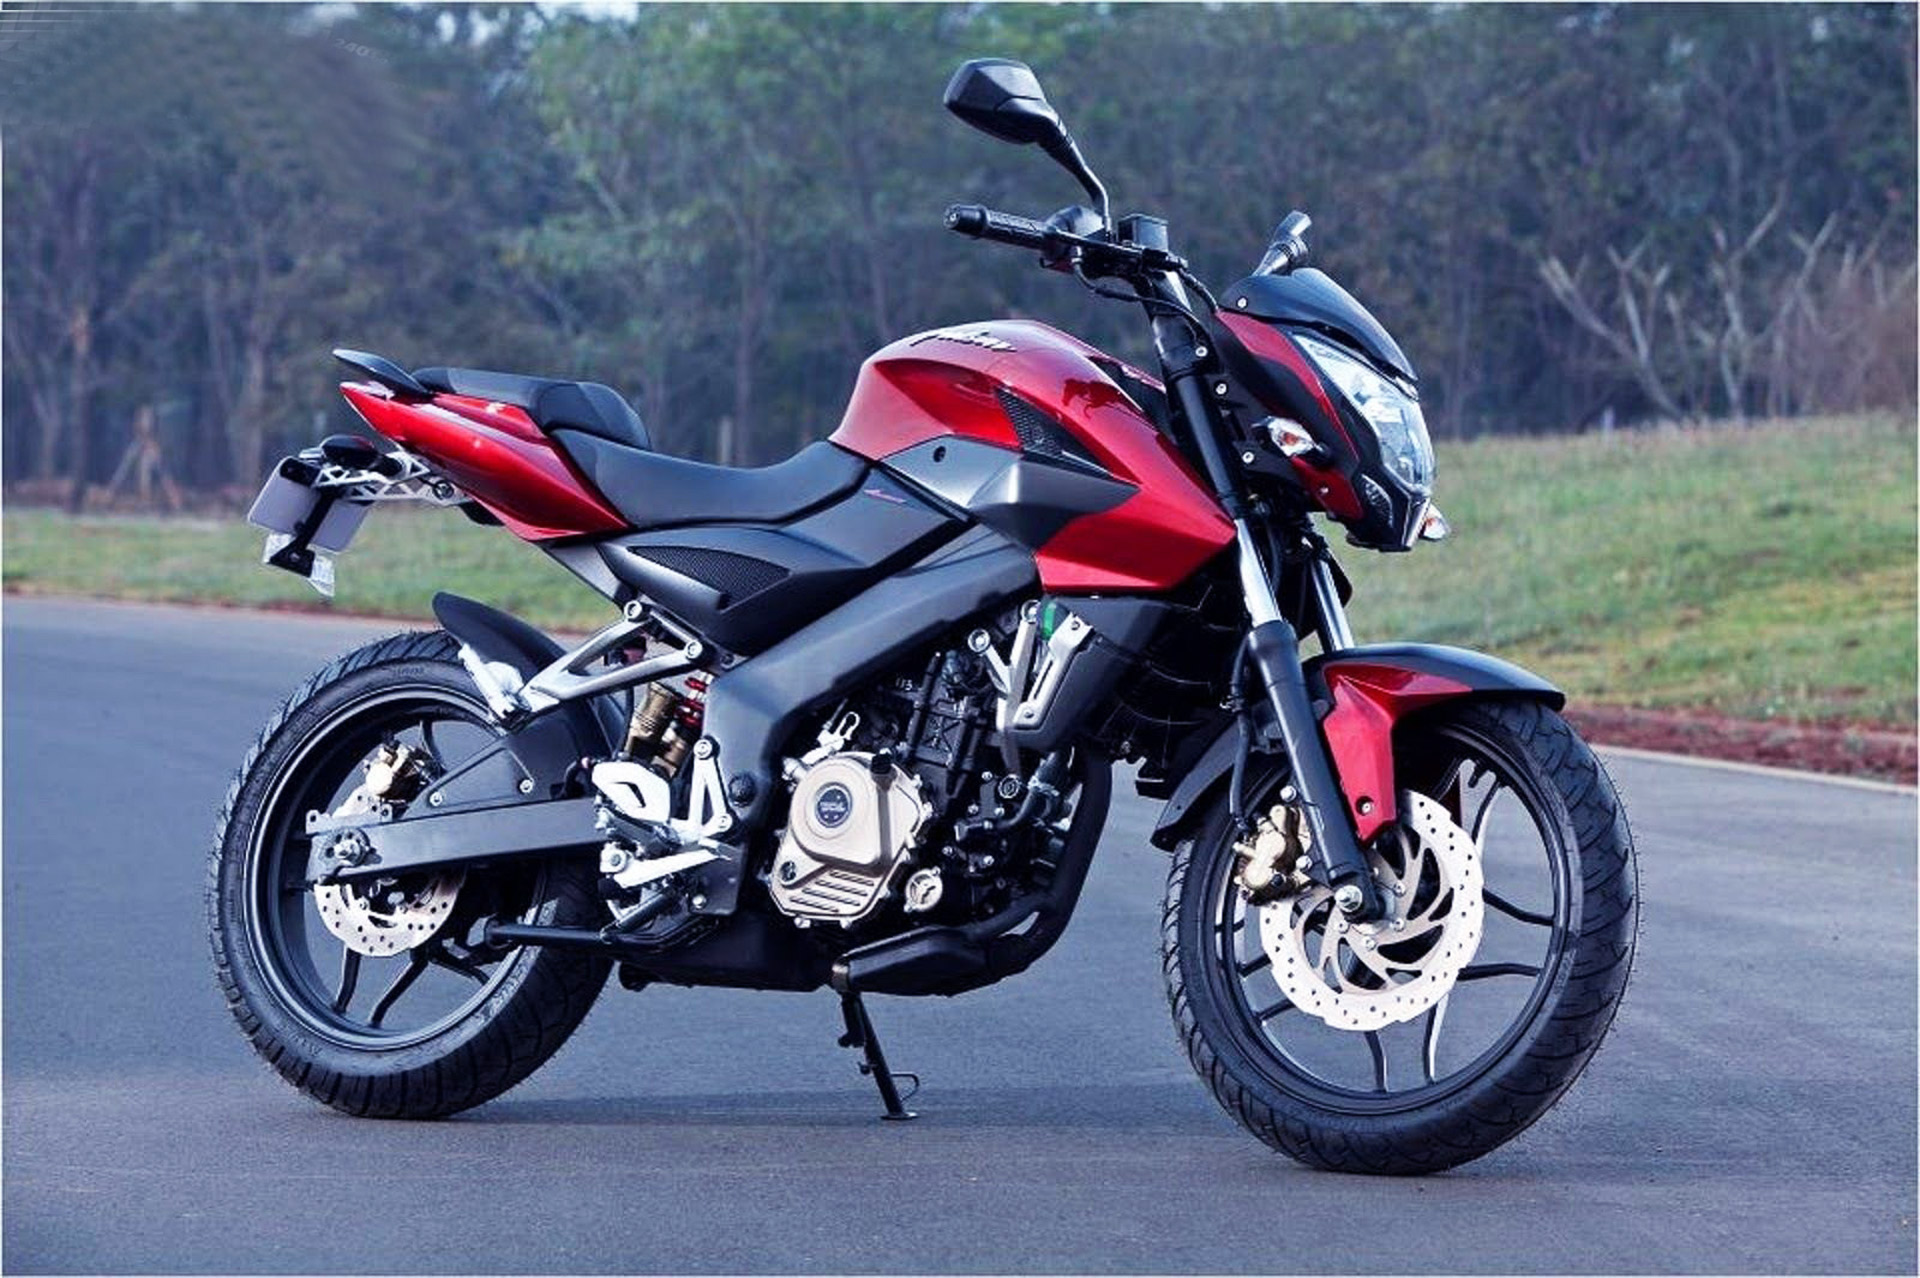 Bajaj Motorcycles Pulsar – best import motorcycle